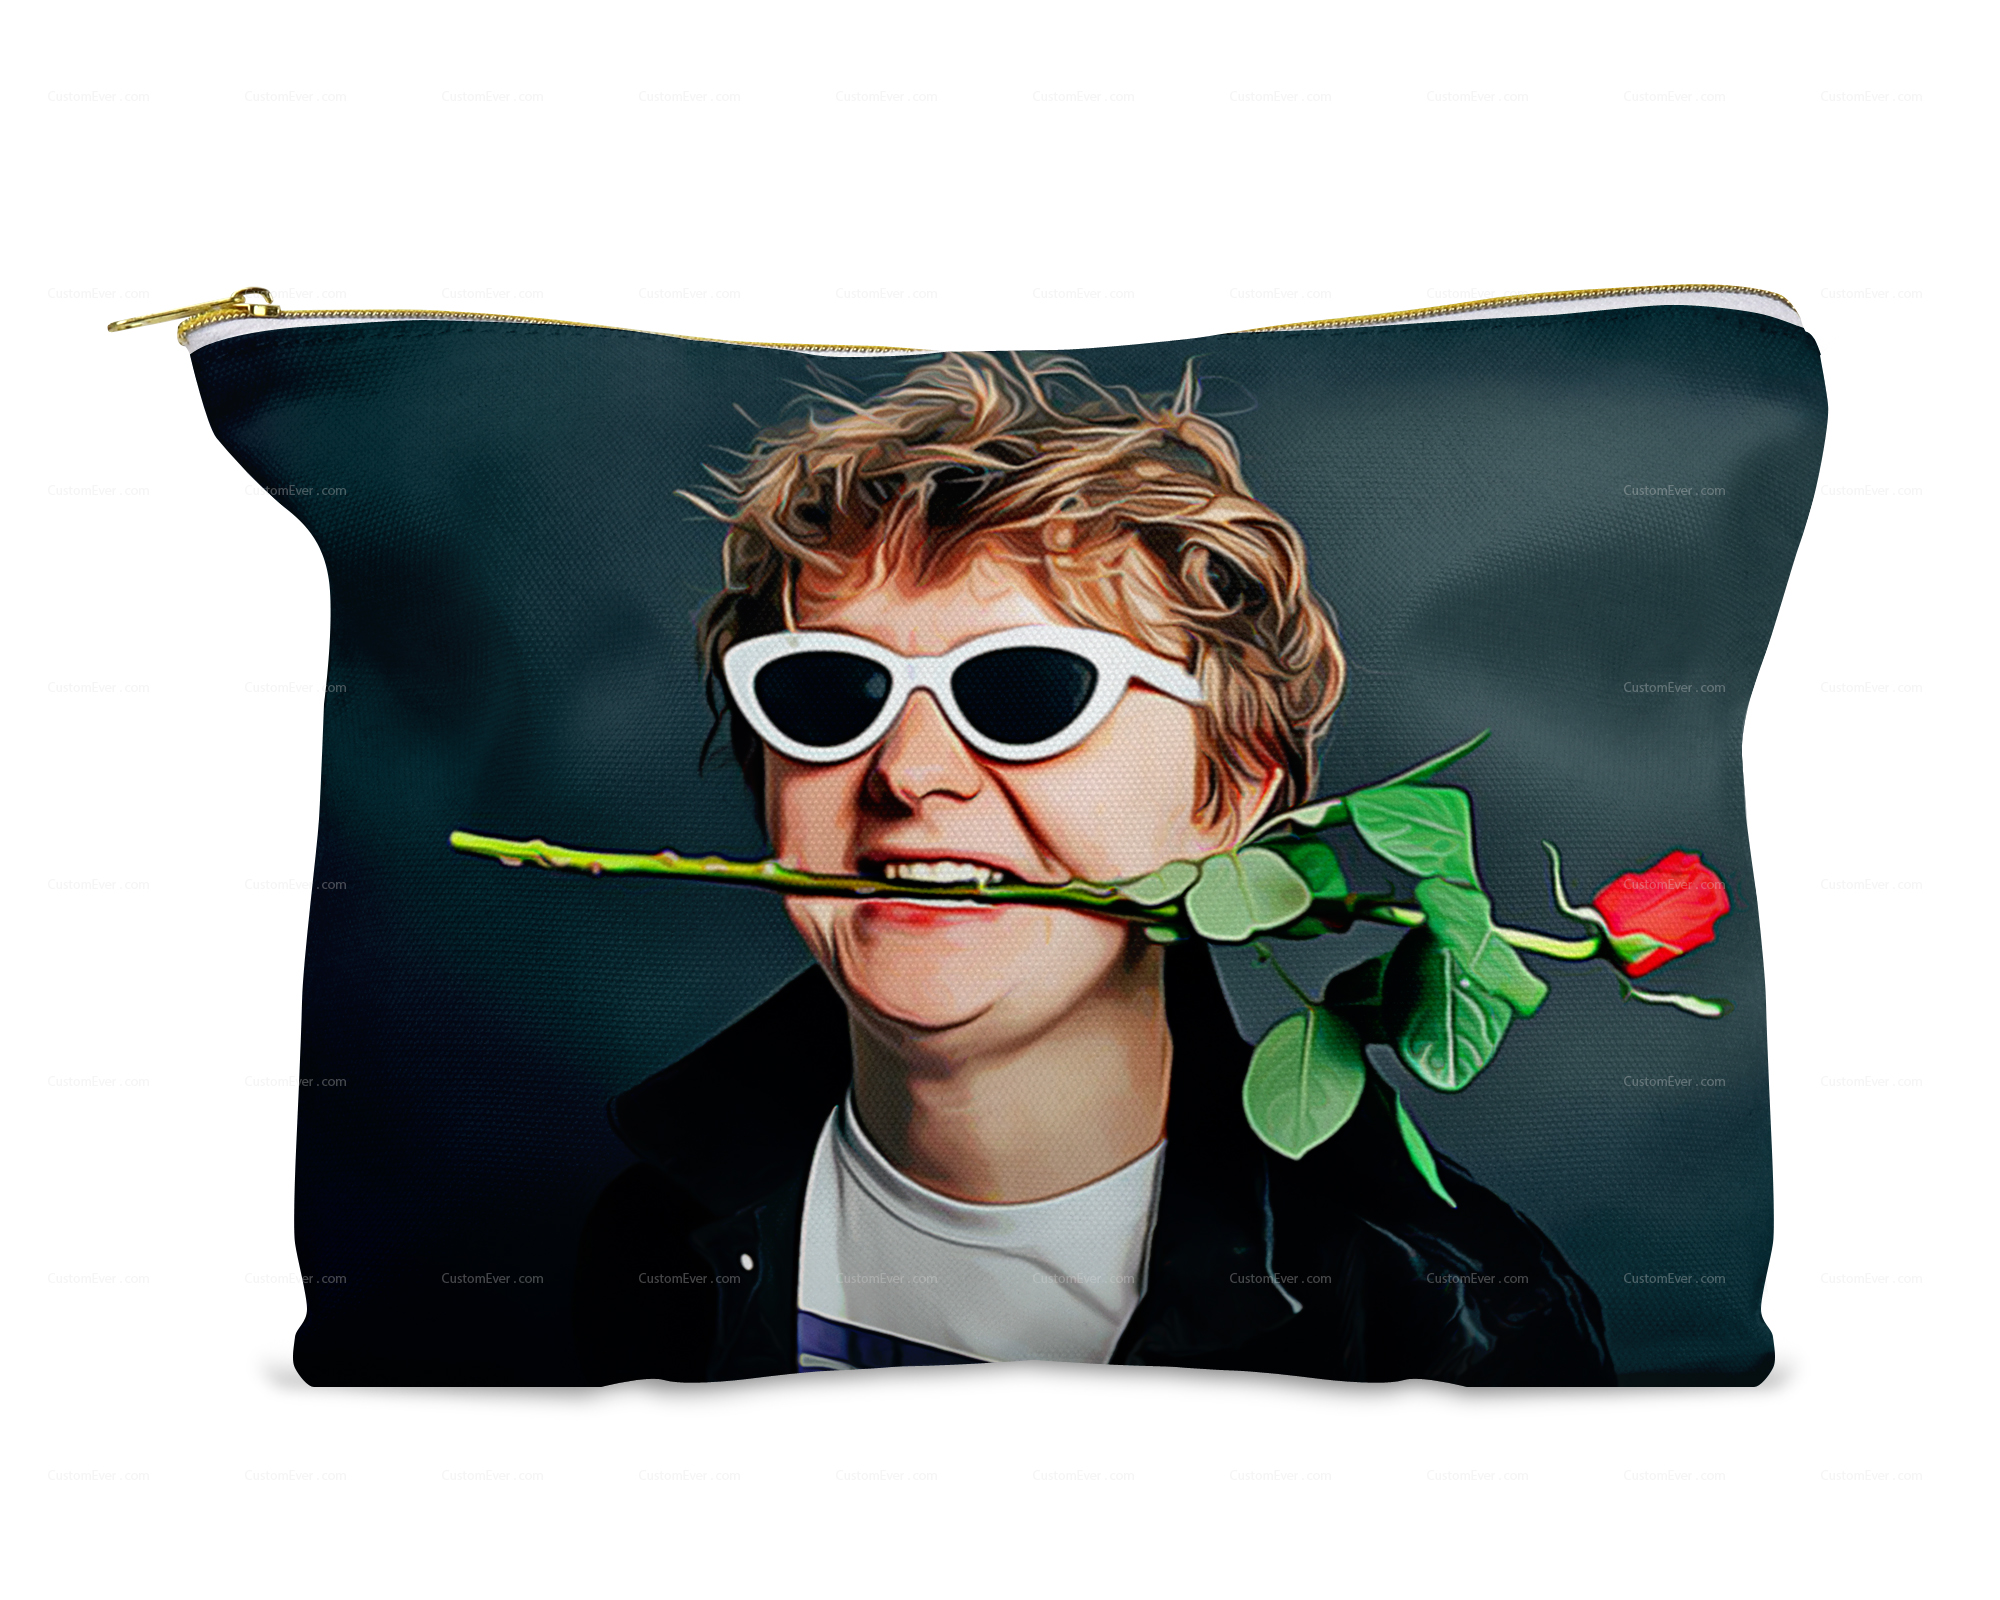 Lewis Capaldi Rose Cosmetic Bag Travel Size Toiletries Zipper Pouch Small Makeup Bag Cute Travel Bag For Women